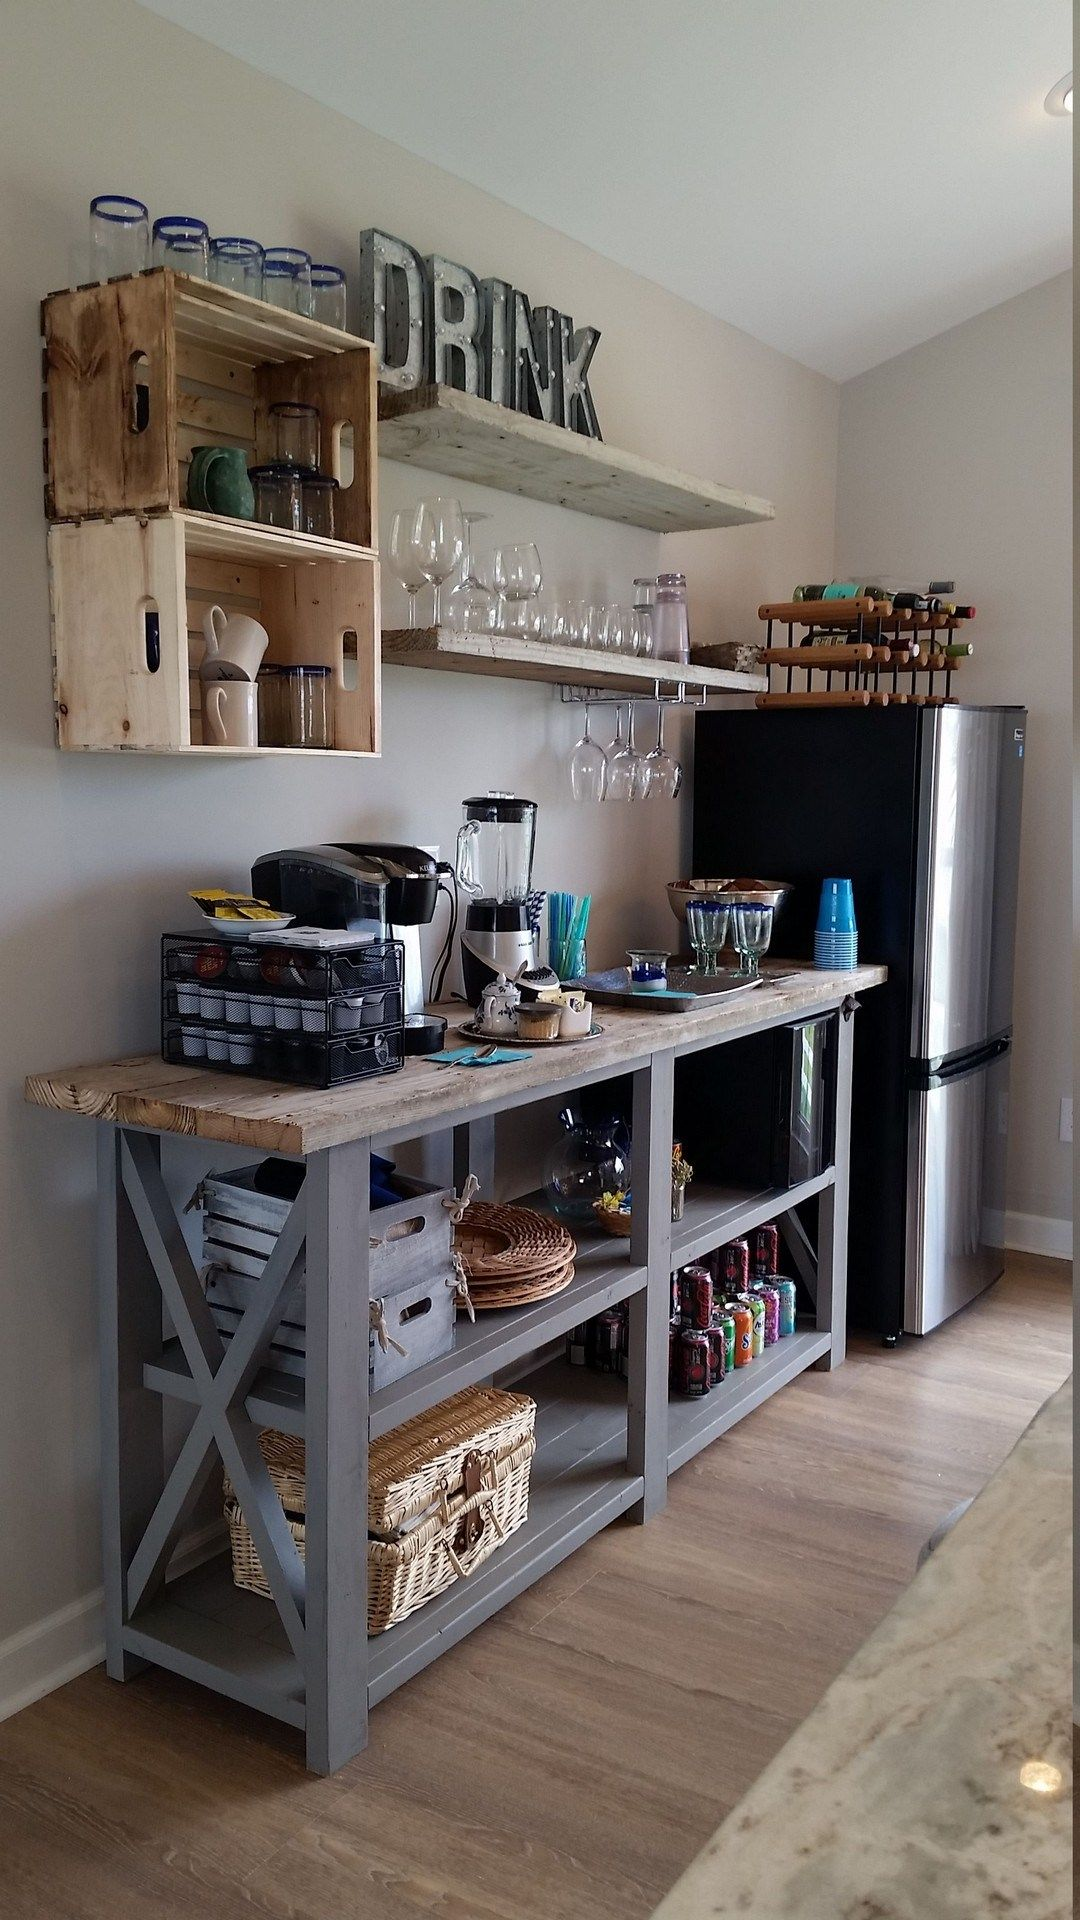 40 diy kitchen ideas for small spaces 1 kitchen bars for home rh pinterest com